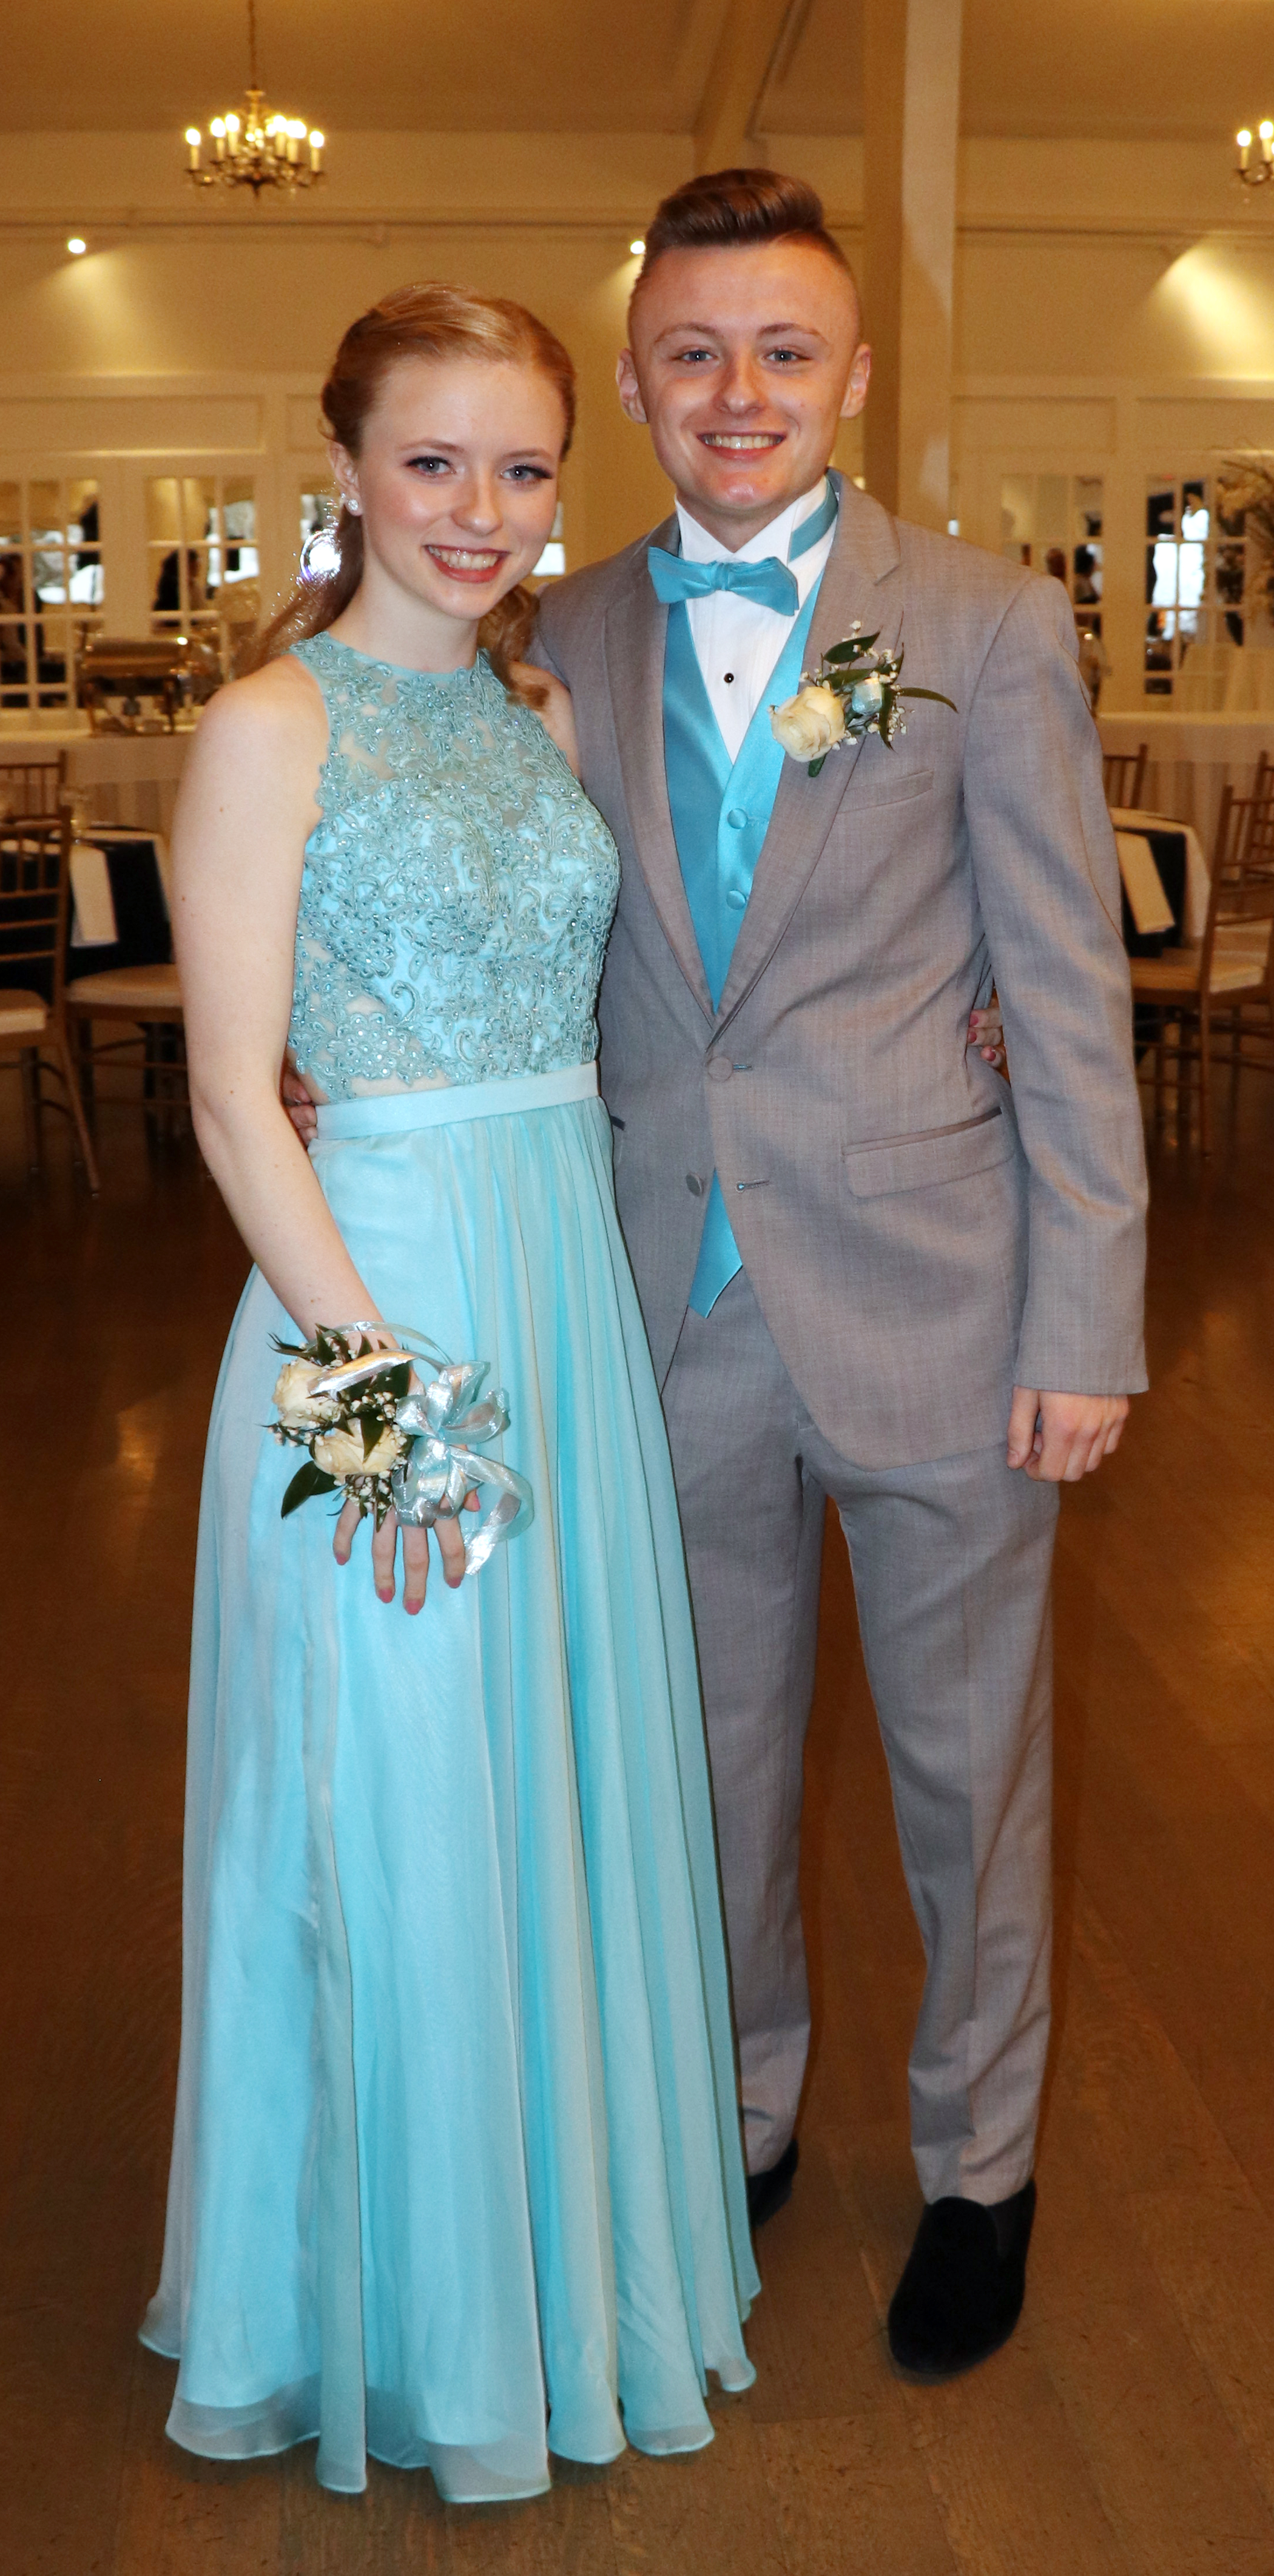 Pretty Ghetto Prom Suits Pictures Inspiration - Wedding Ideas ...